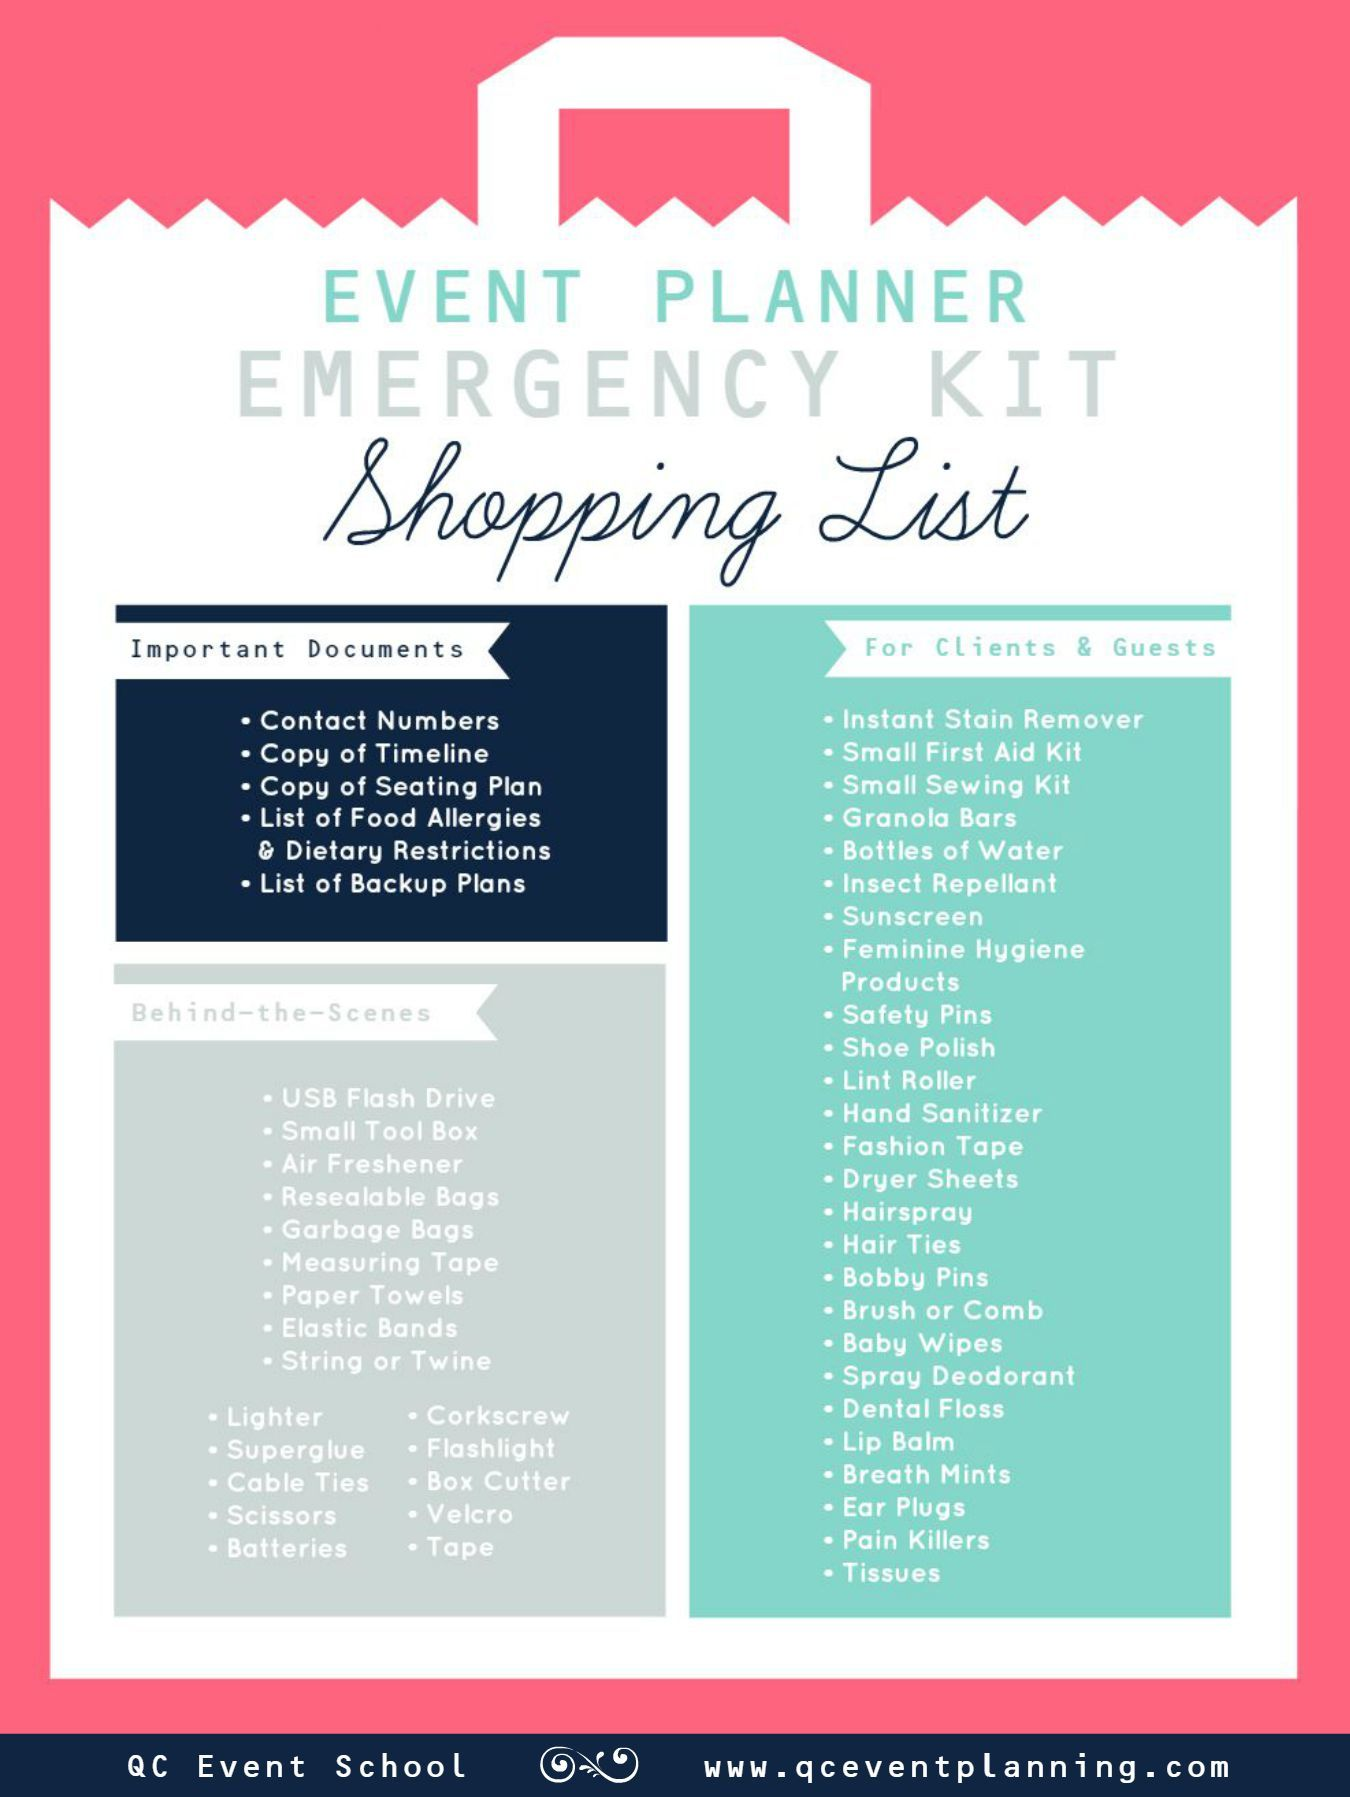 Pin by Blue Moon Talent on Event Planning | Wedding event planner